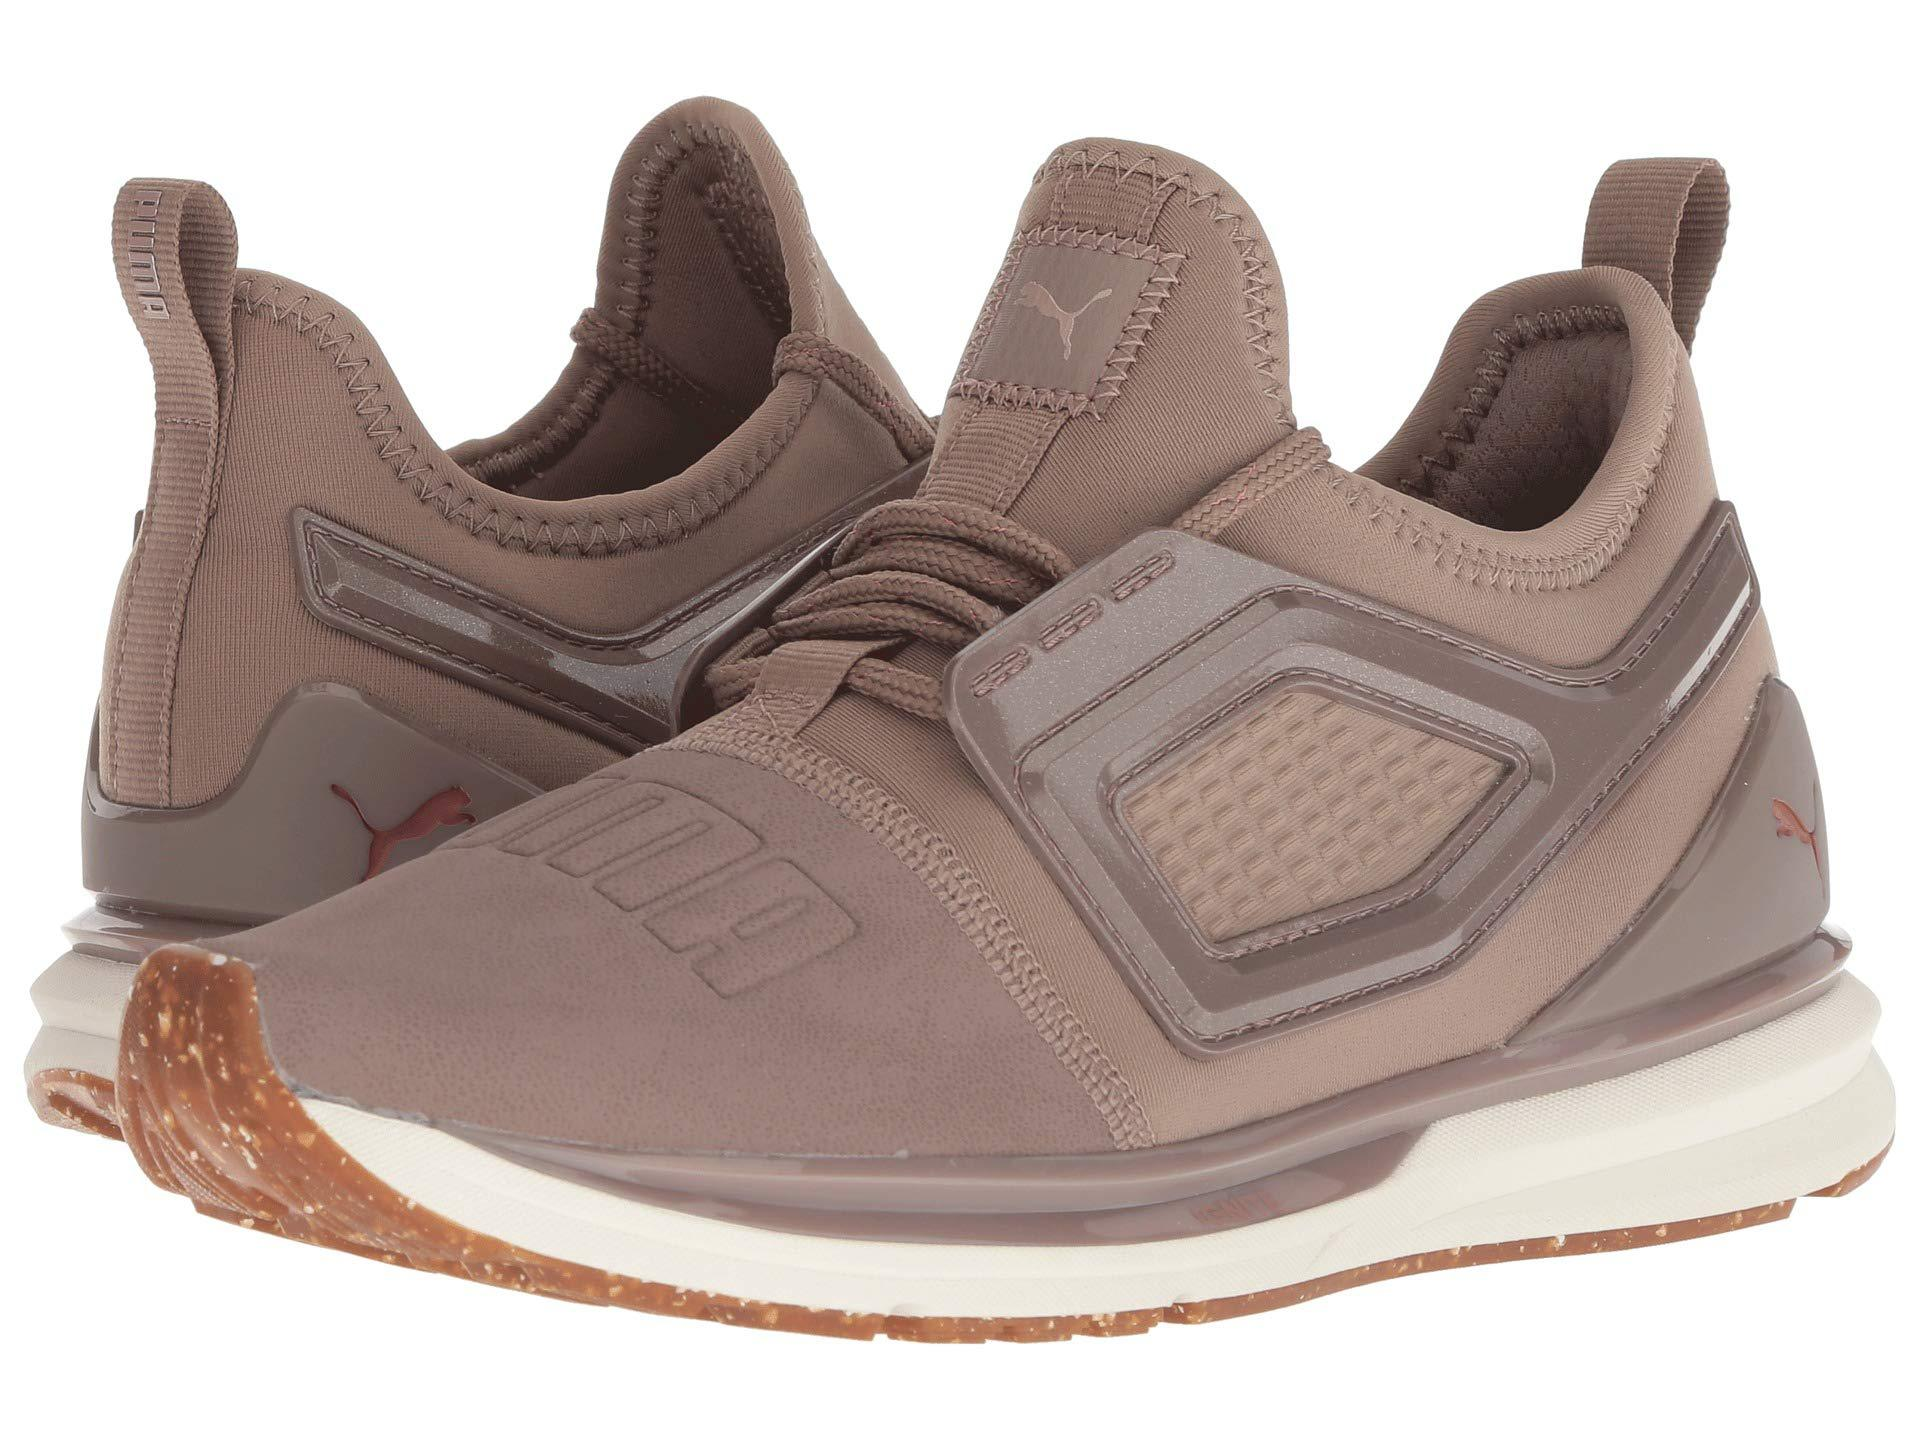 666c6df7238 Lyst - PUMA Ignite Limitless 2 Crafted (taupe Gray rose Gold ...